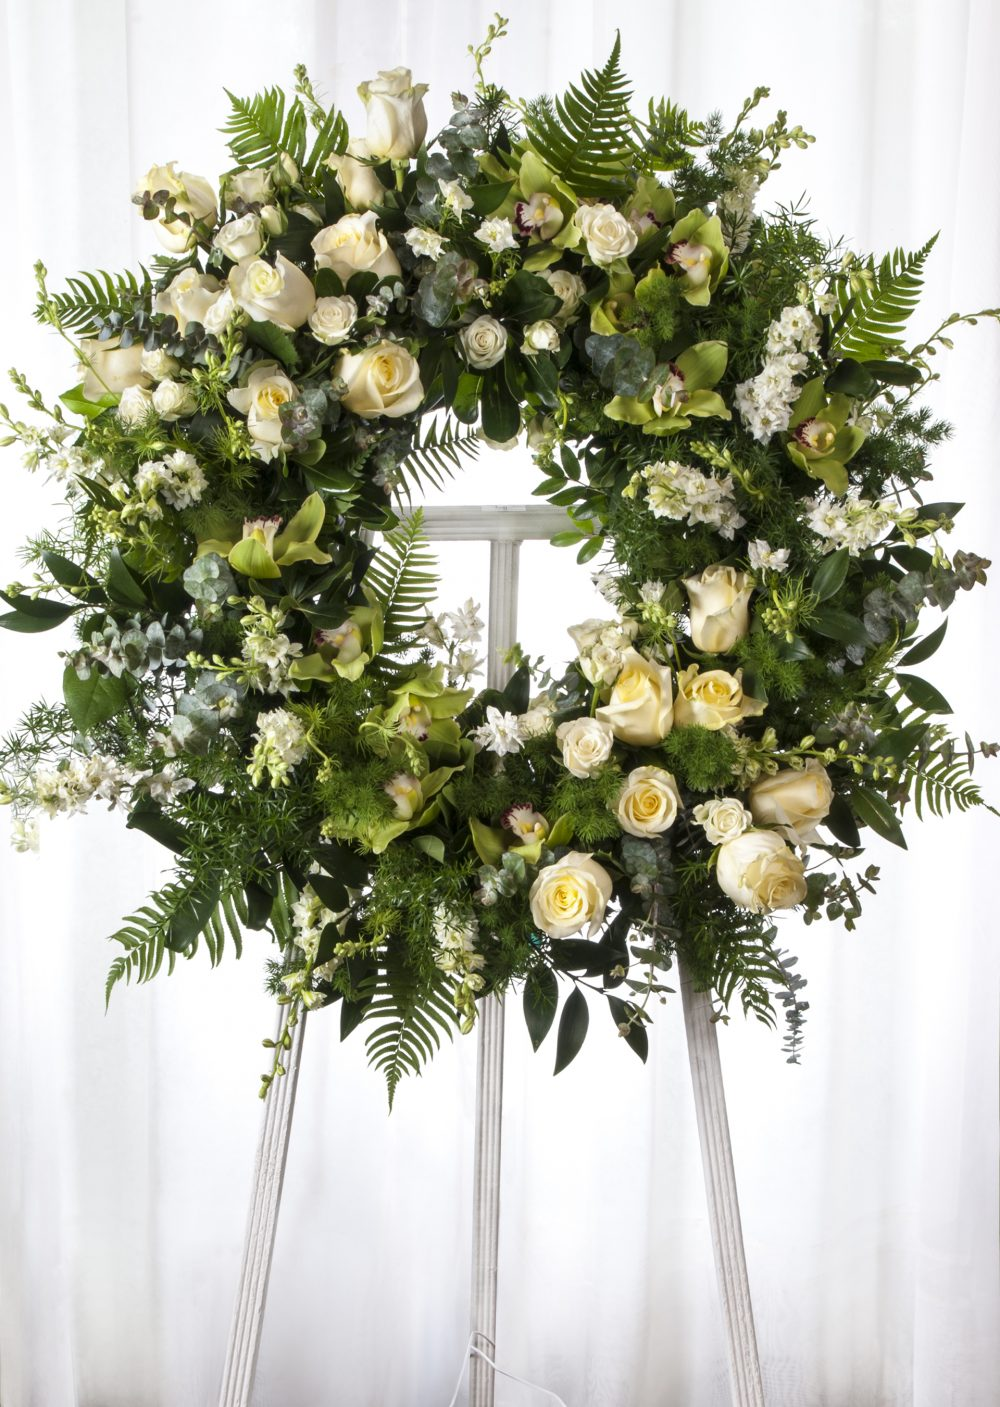 Funeral Fresh Wreaths